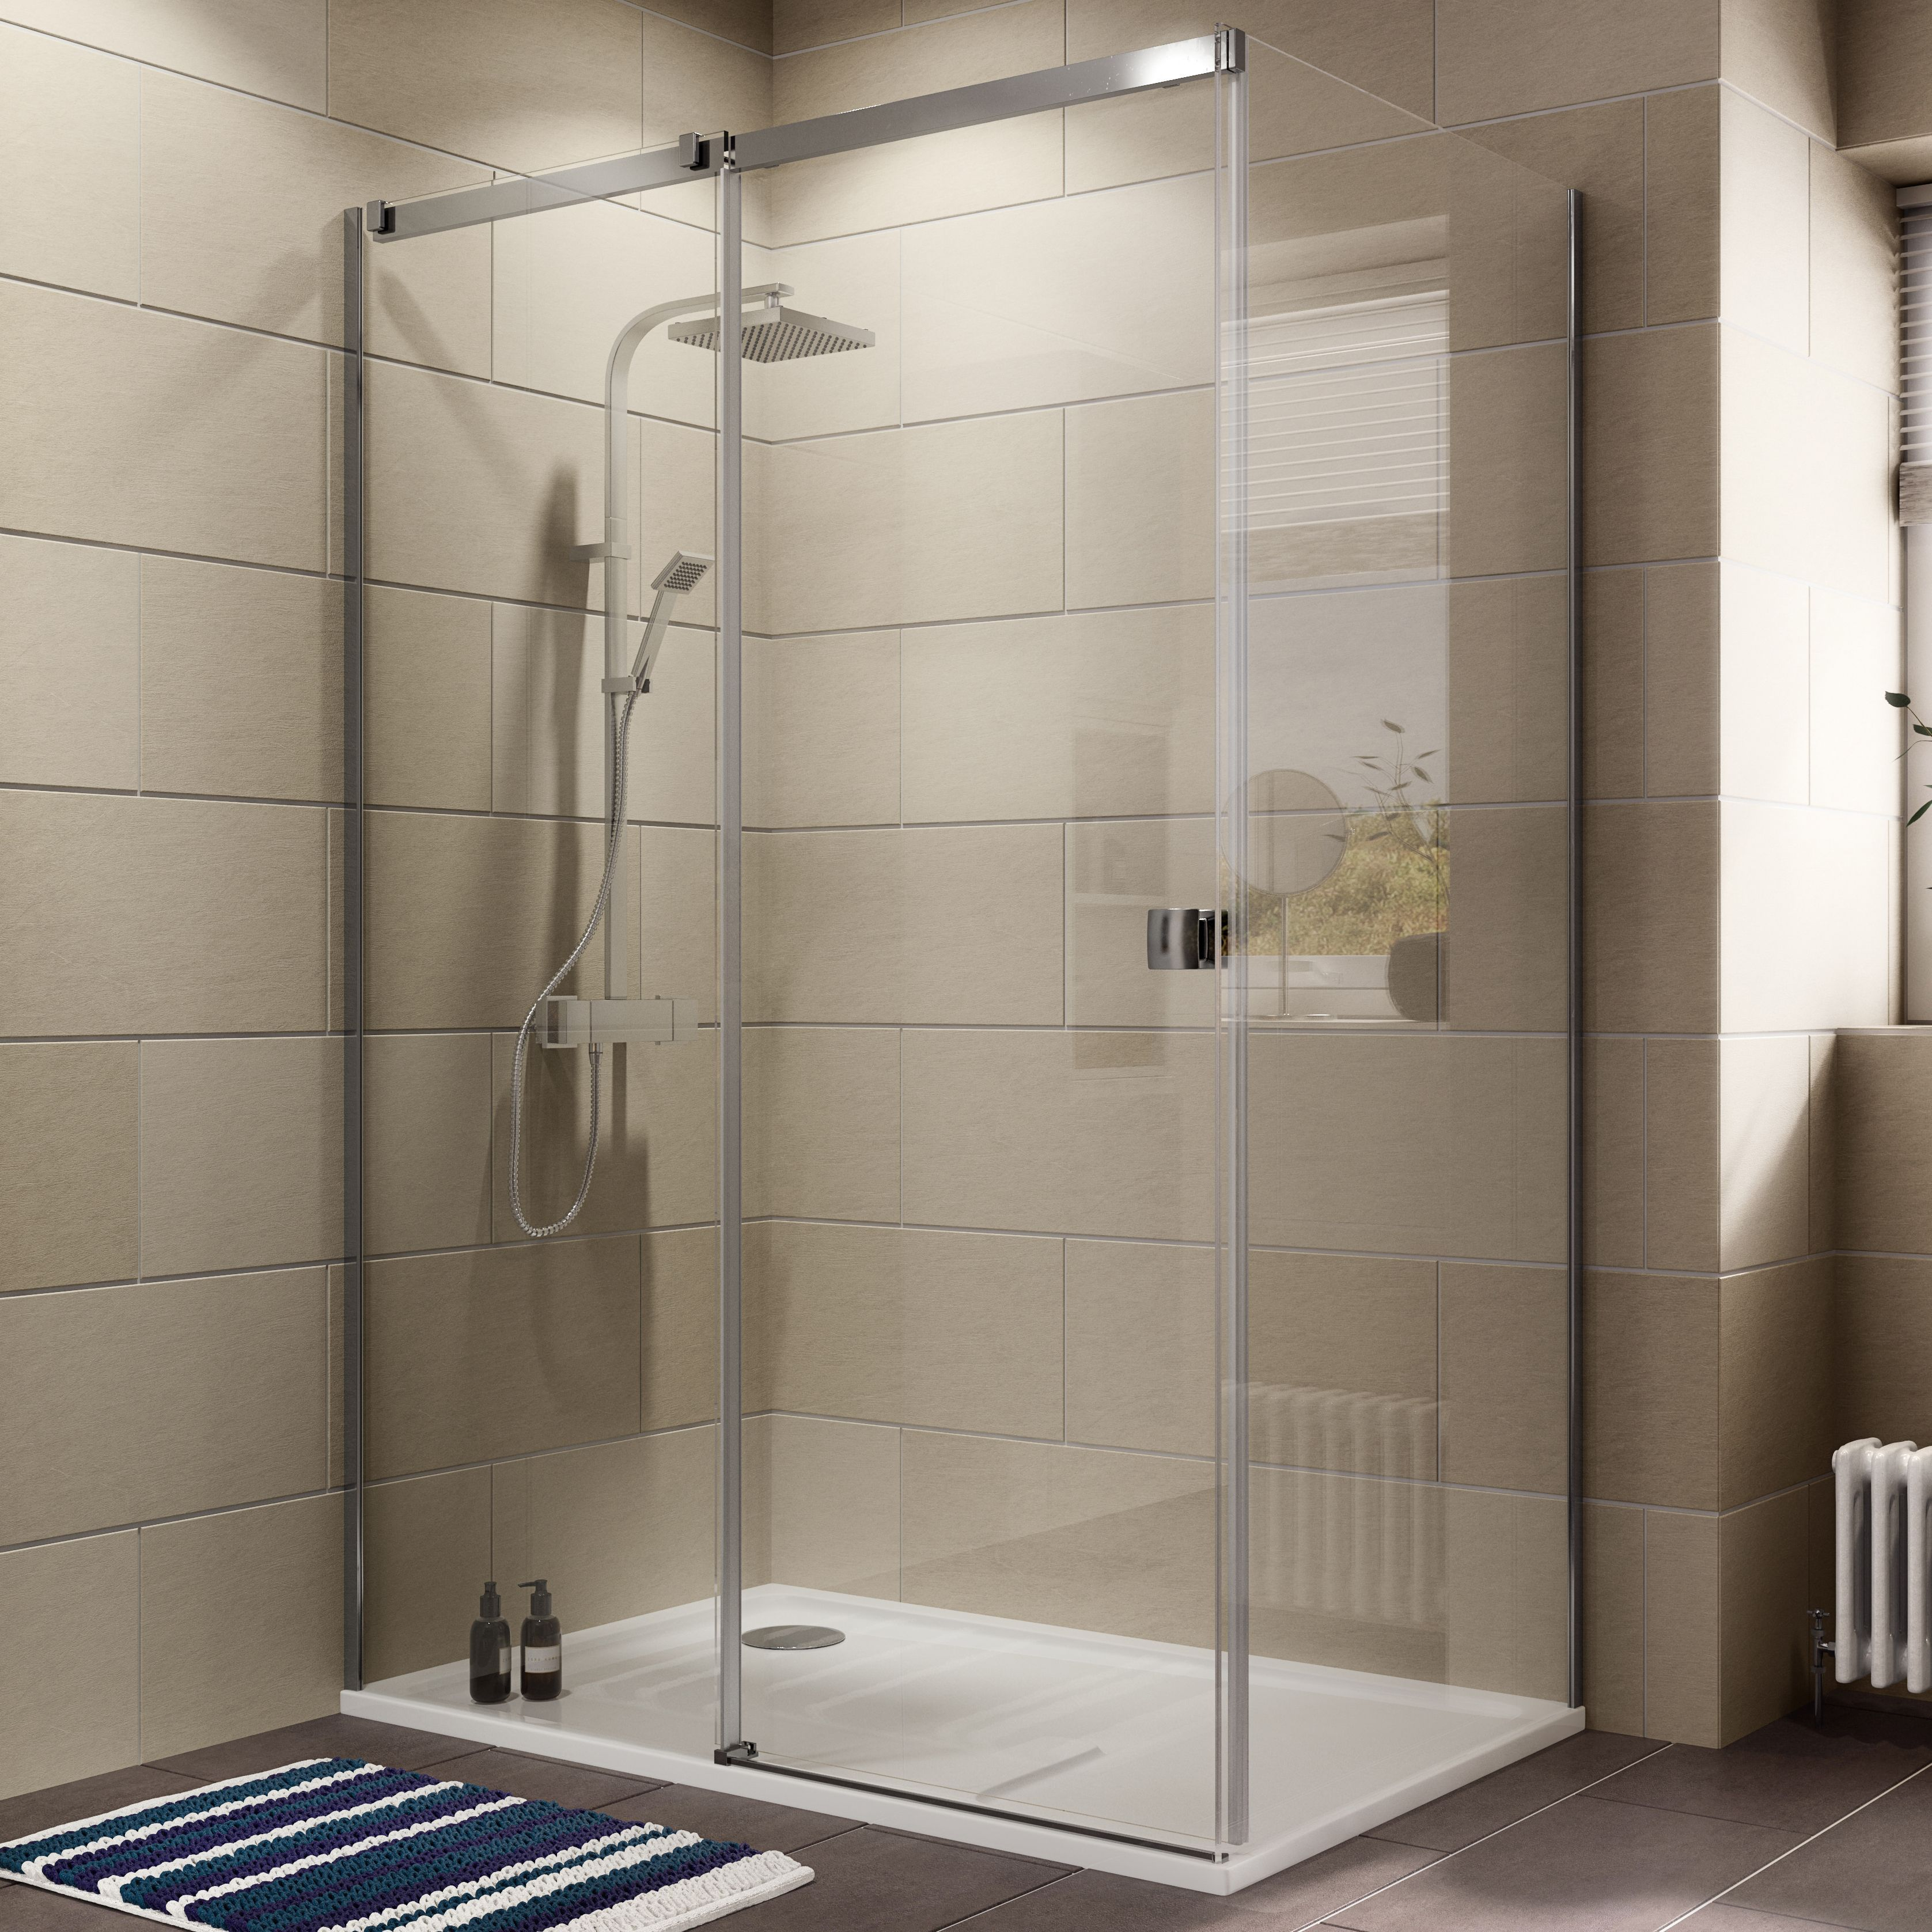 Cooke & Lewis Luxuriant Rectangular Lh Shower Enclosure, Tray & Waste Pack With Single Sliding Door (w)1400mm (d)900mm